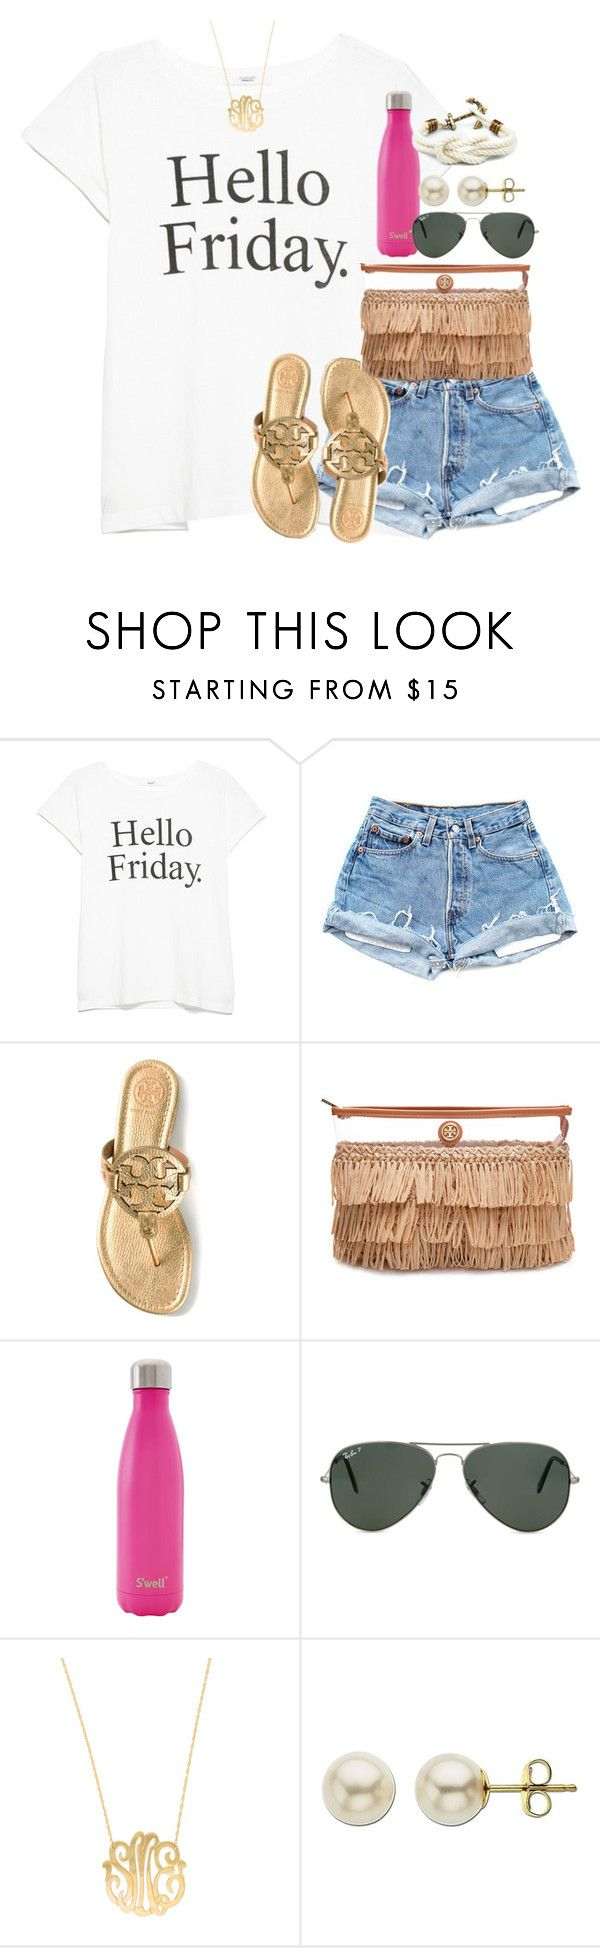 """""""off to a great start w/ this acc :)"""" by syd-em ❤ liked on Polyvore featuring MANGO, Tory Burch, S'well, Ray-Ban, Moon and Lola and Lord & Taylor"""